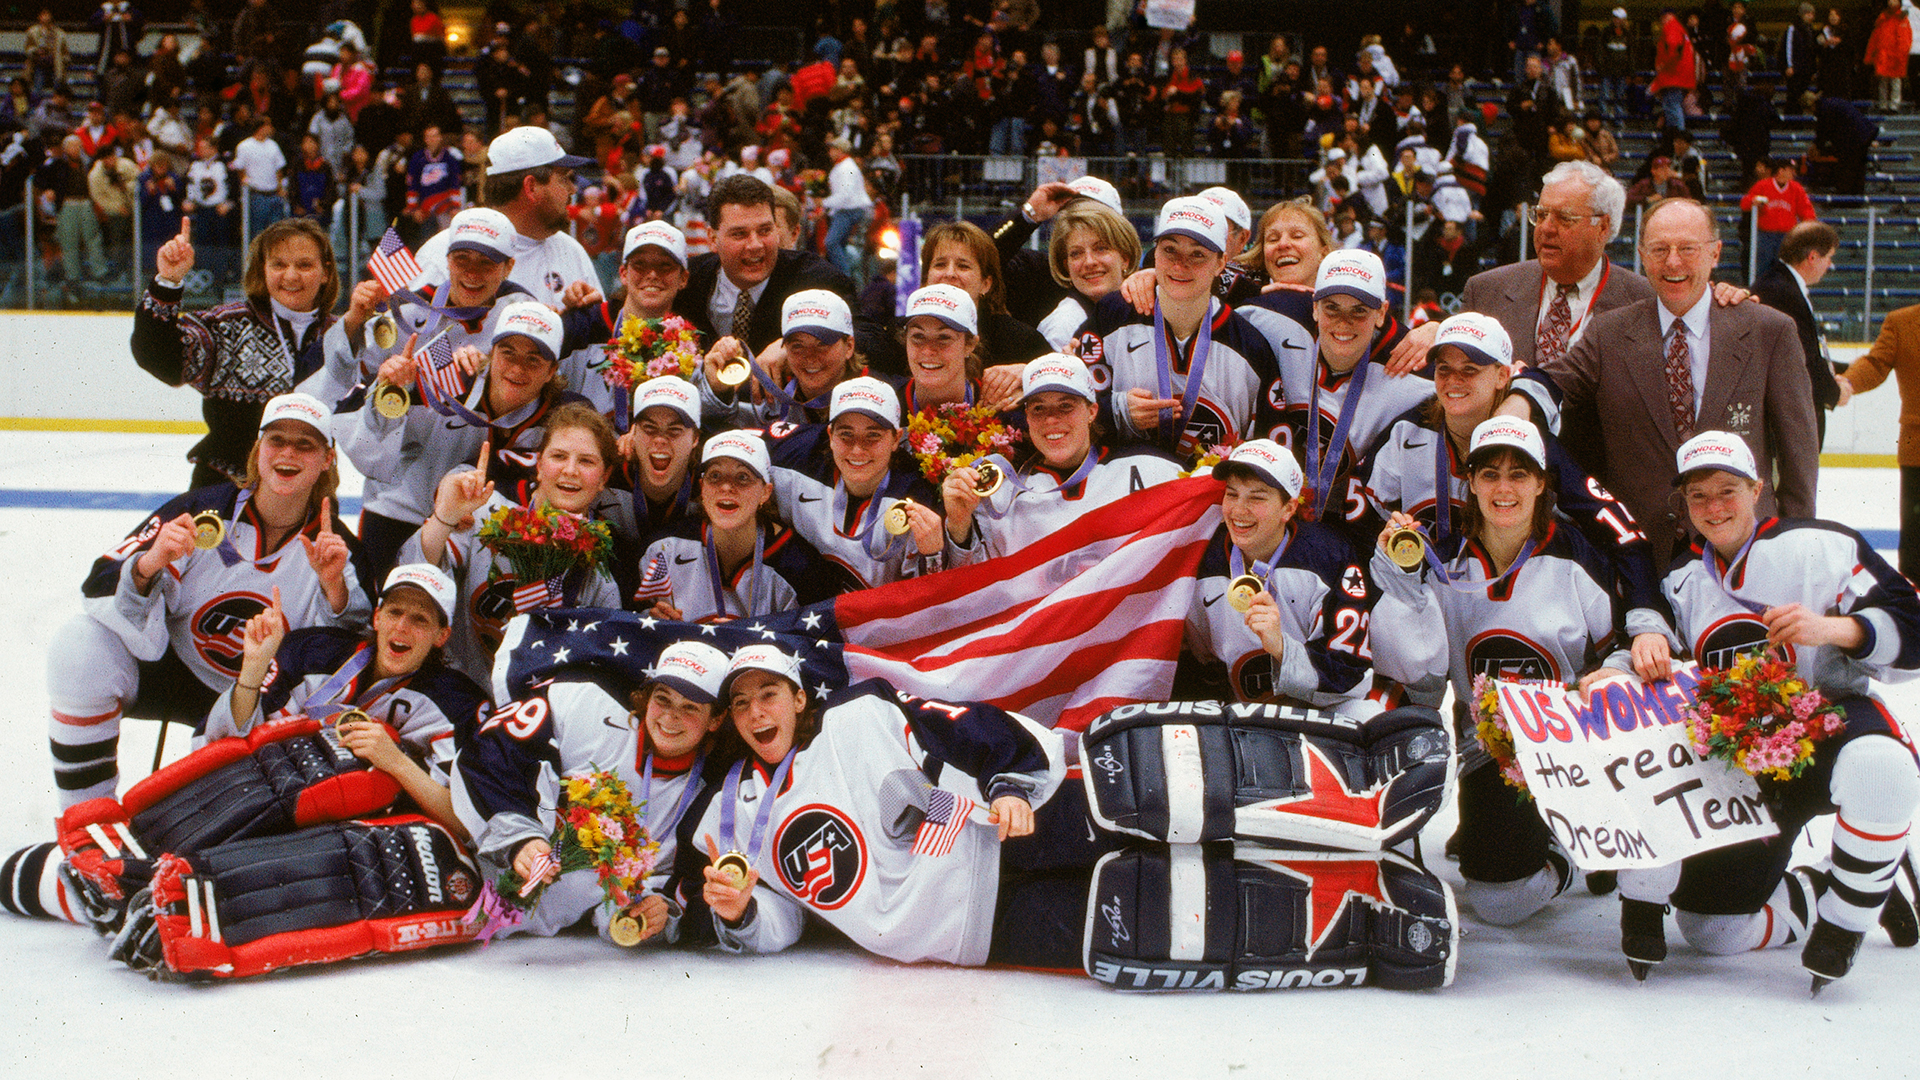 February 17, 1998: Team USA Won the First Olympic Gold Medal in Women's Ice Hockey